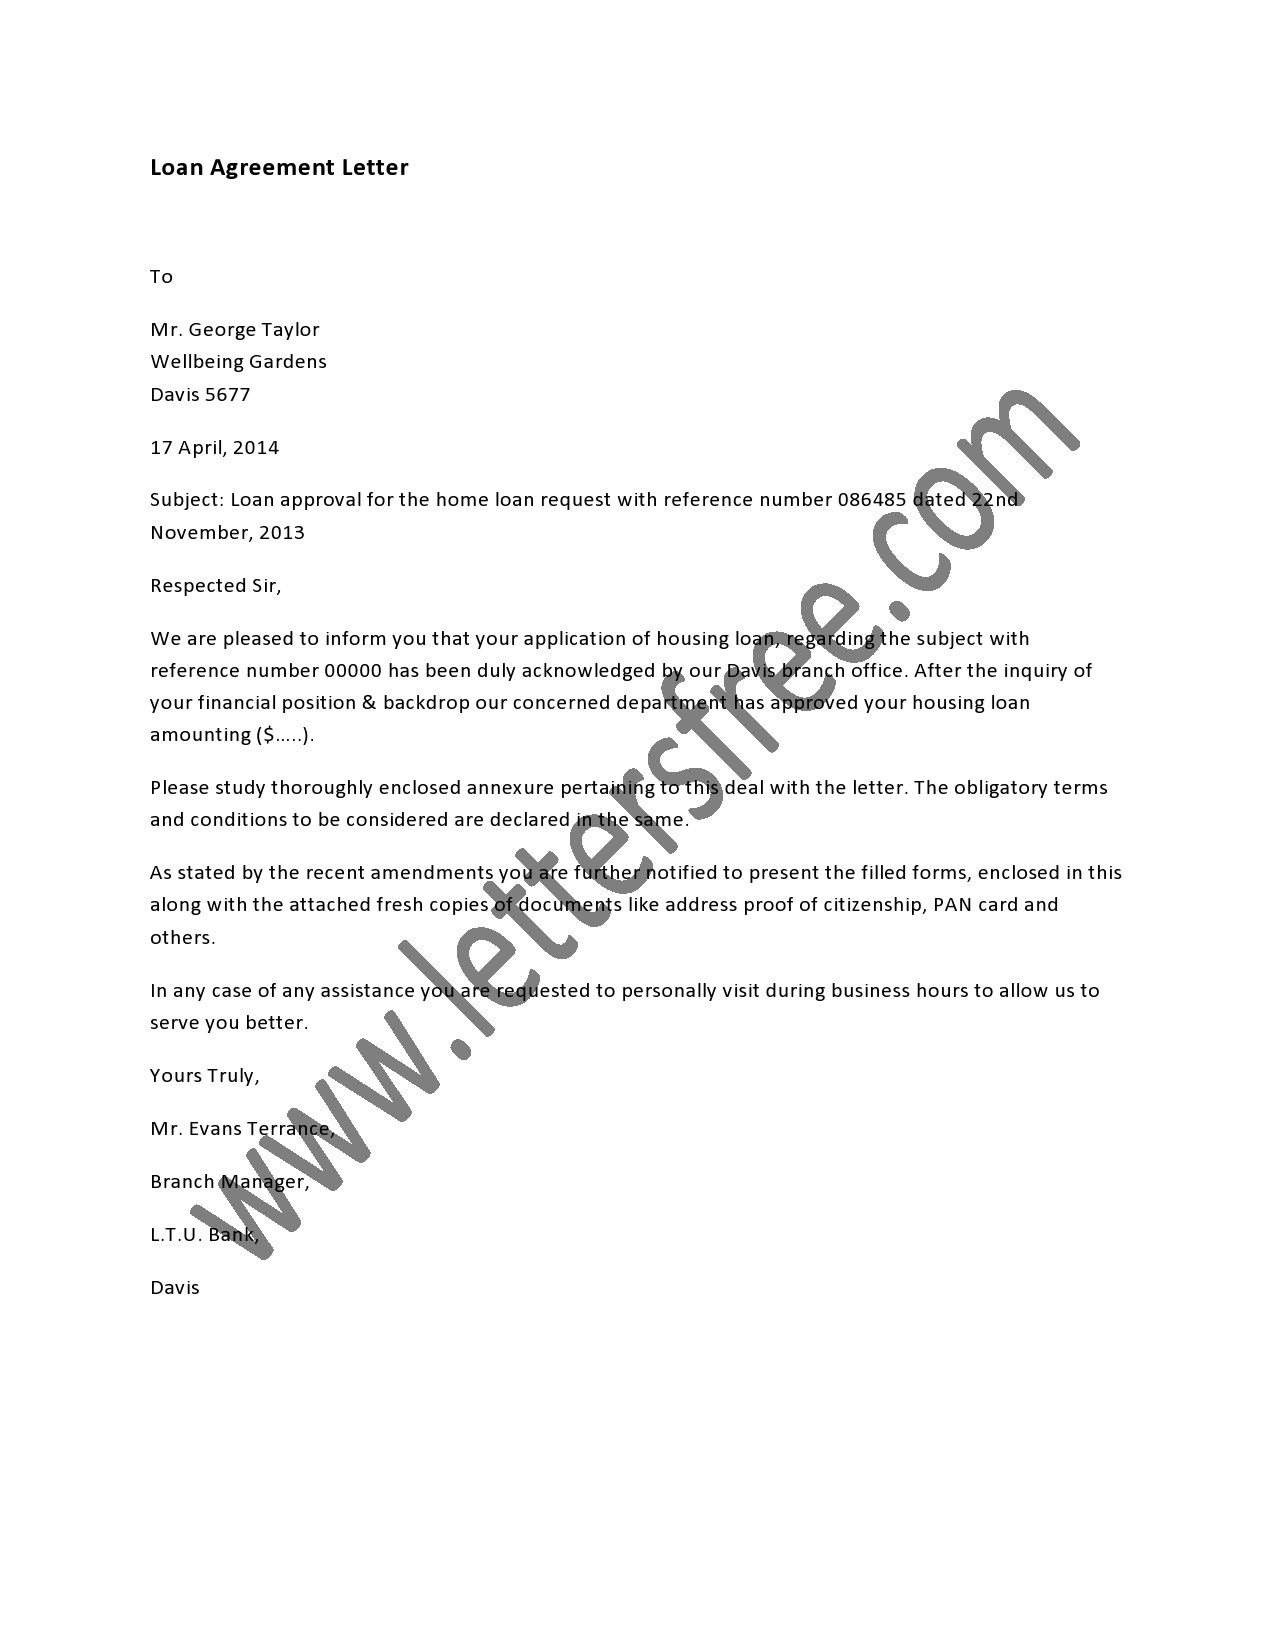 Loan Agreement Letter is usually a written contract between a – Agreement Letter for Loan